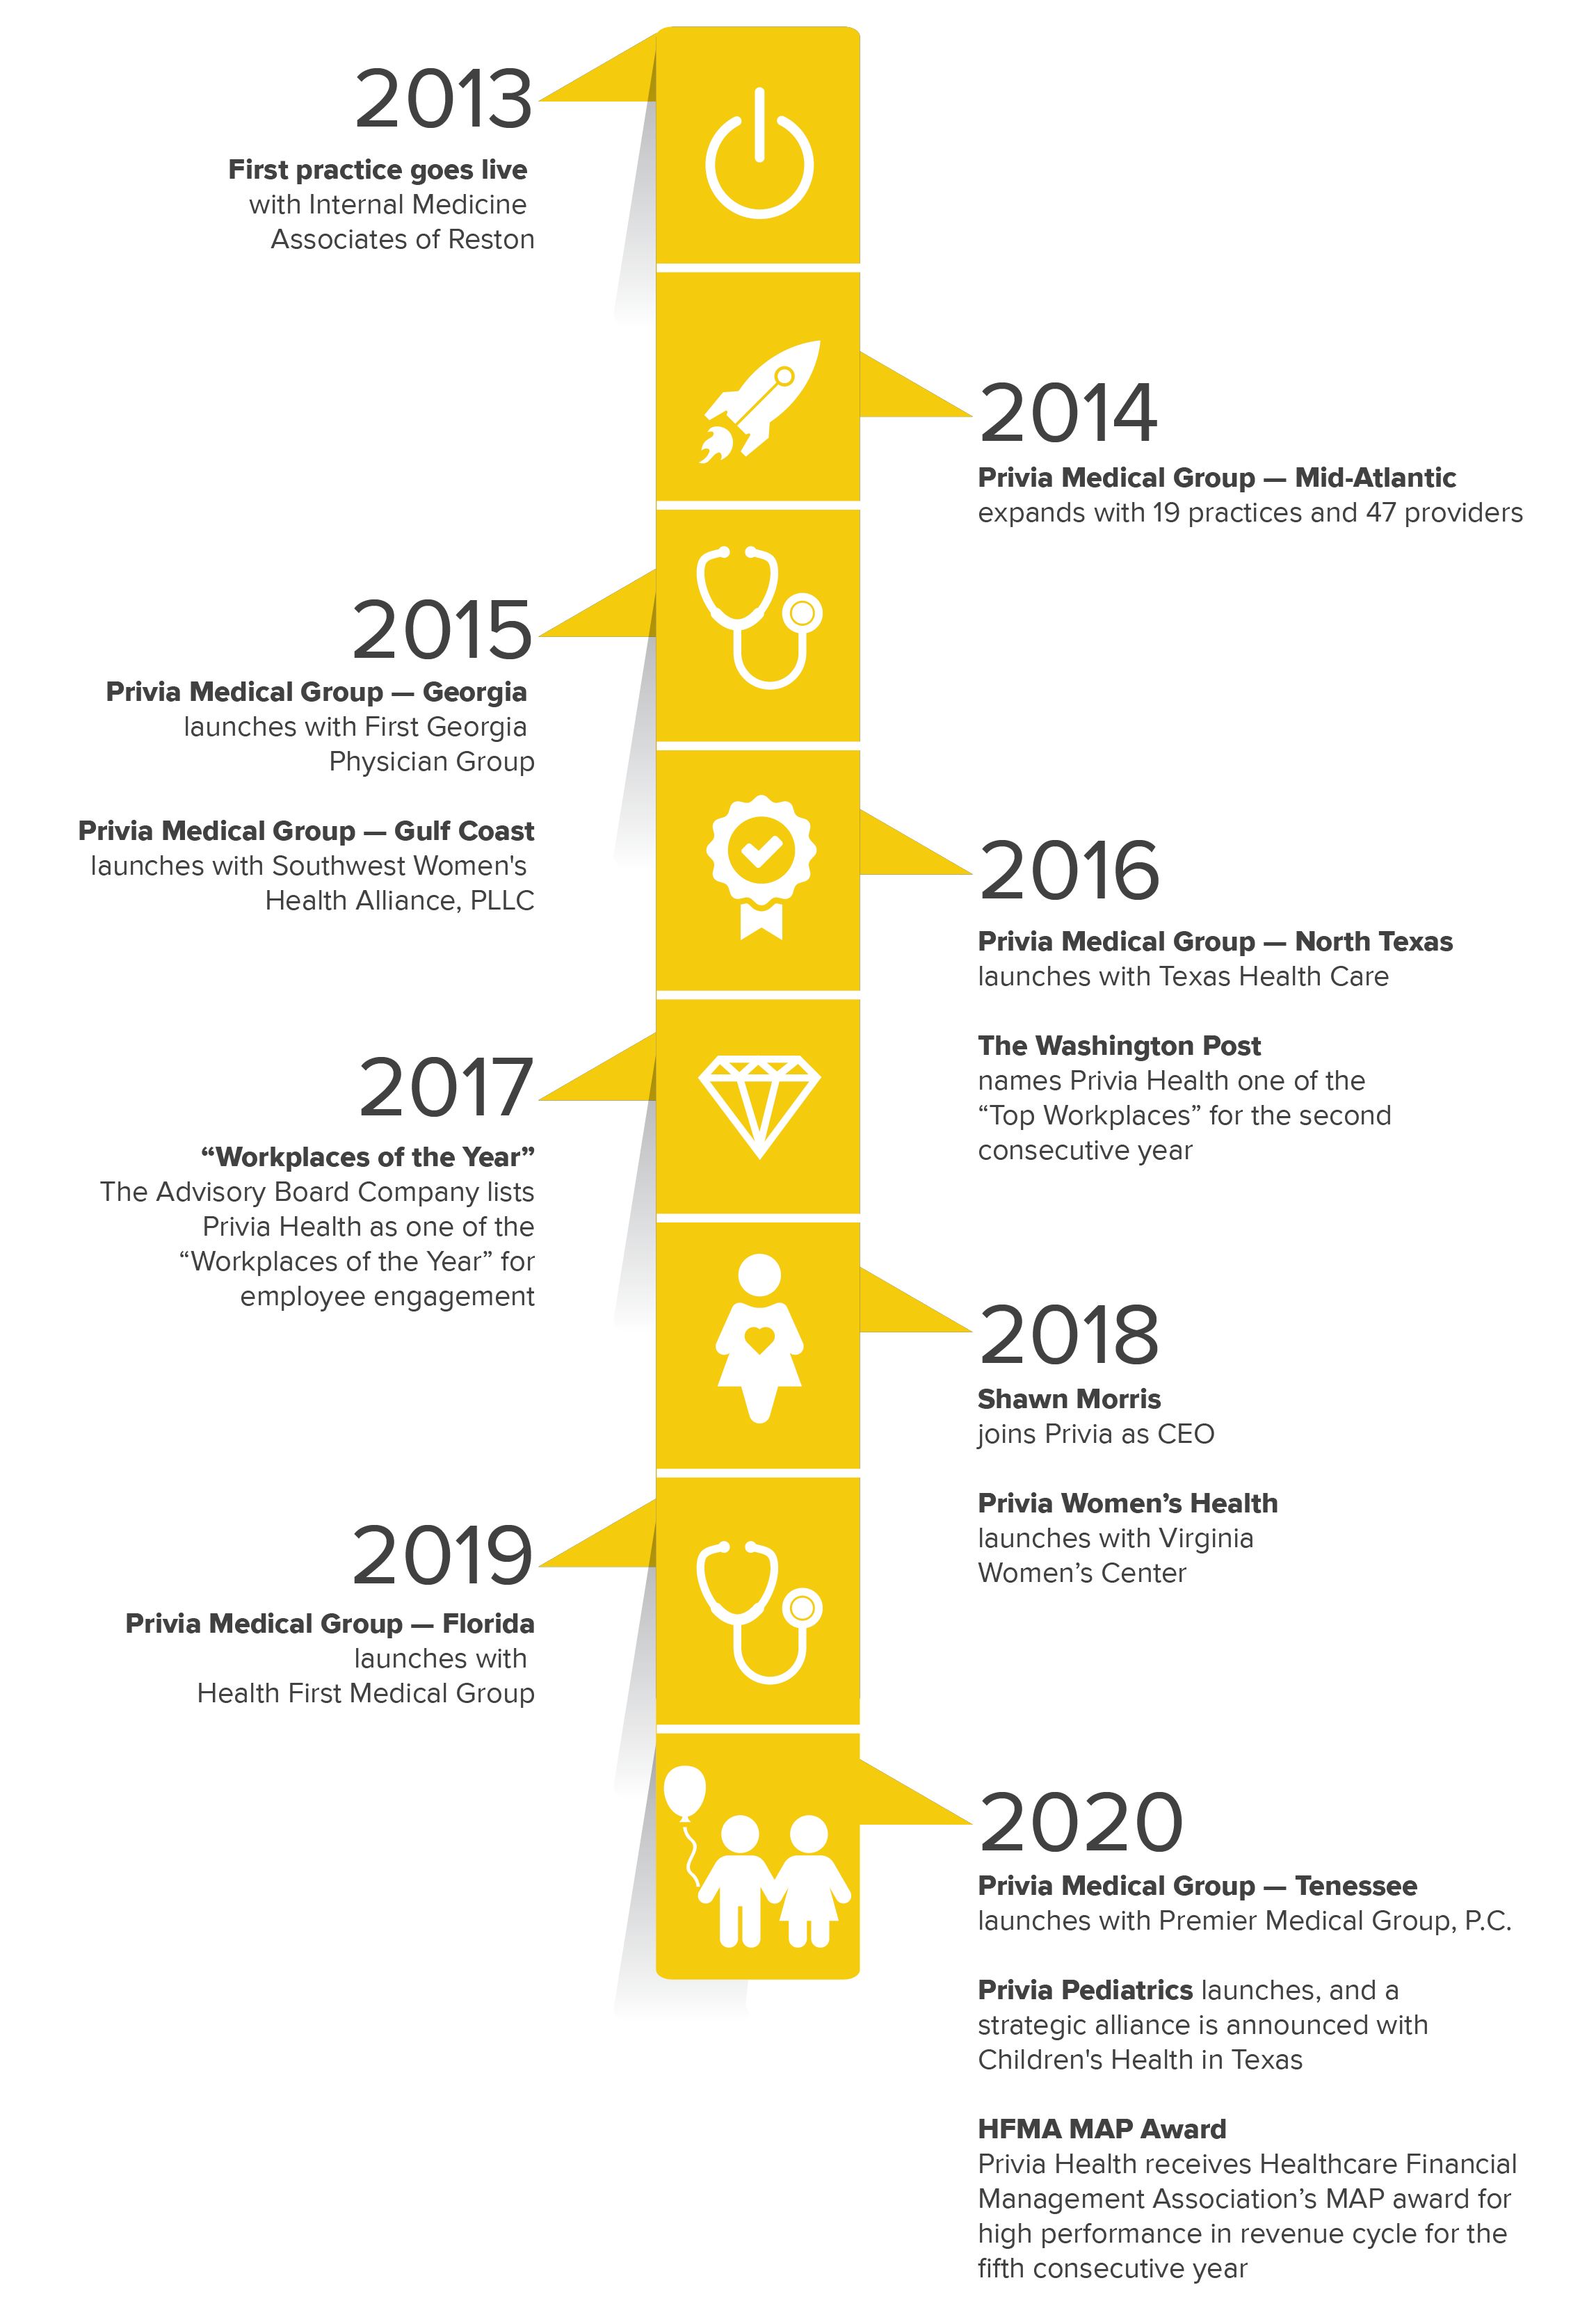 AboutUs timeline 2021